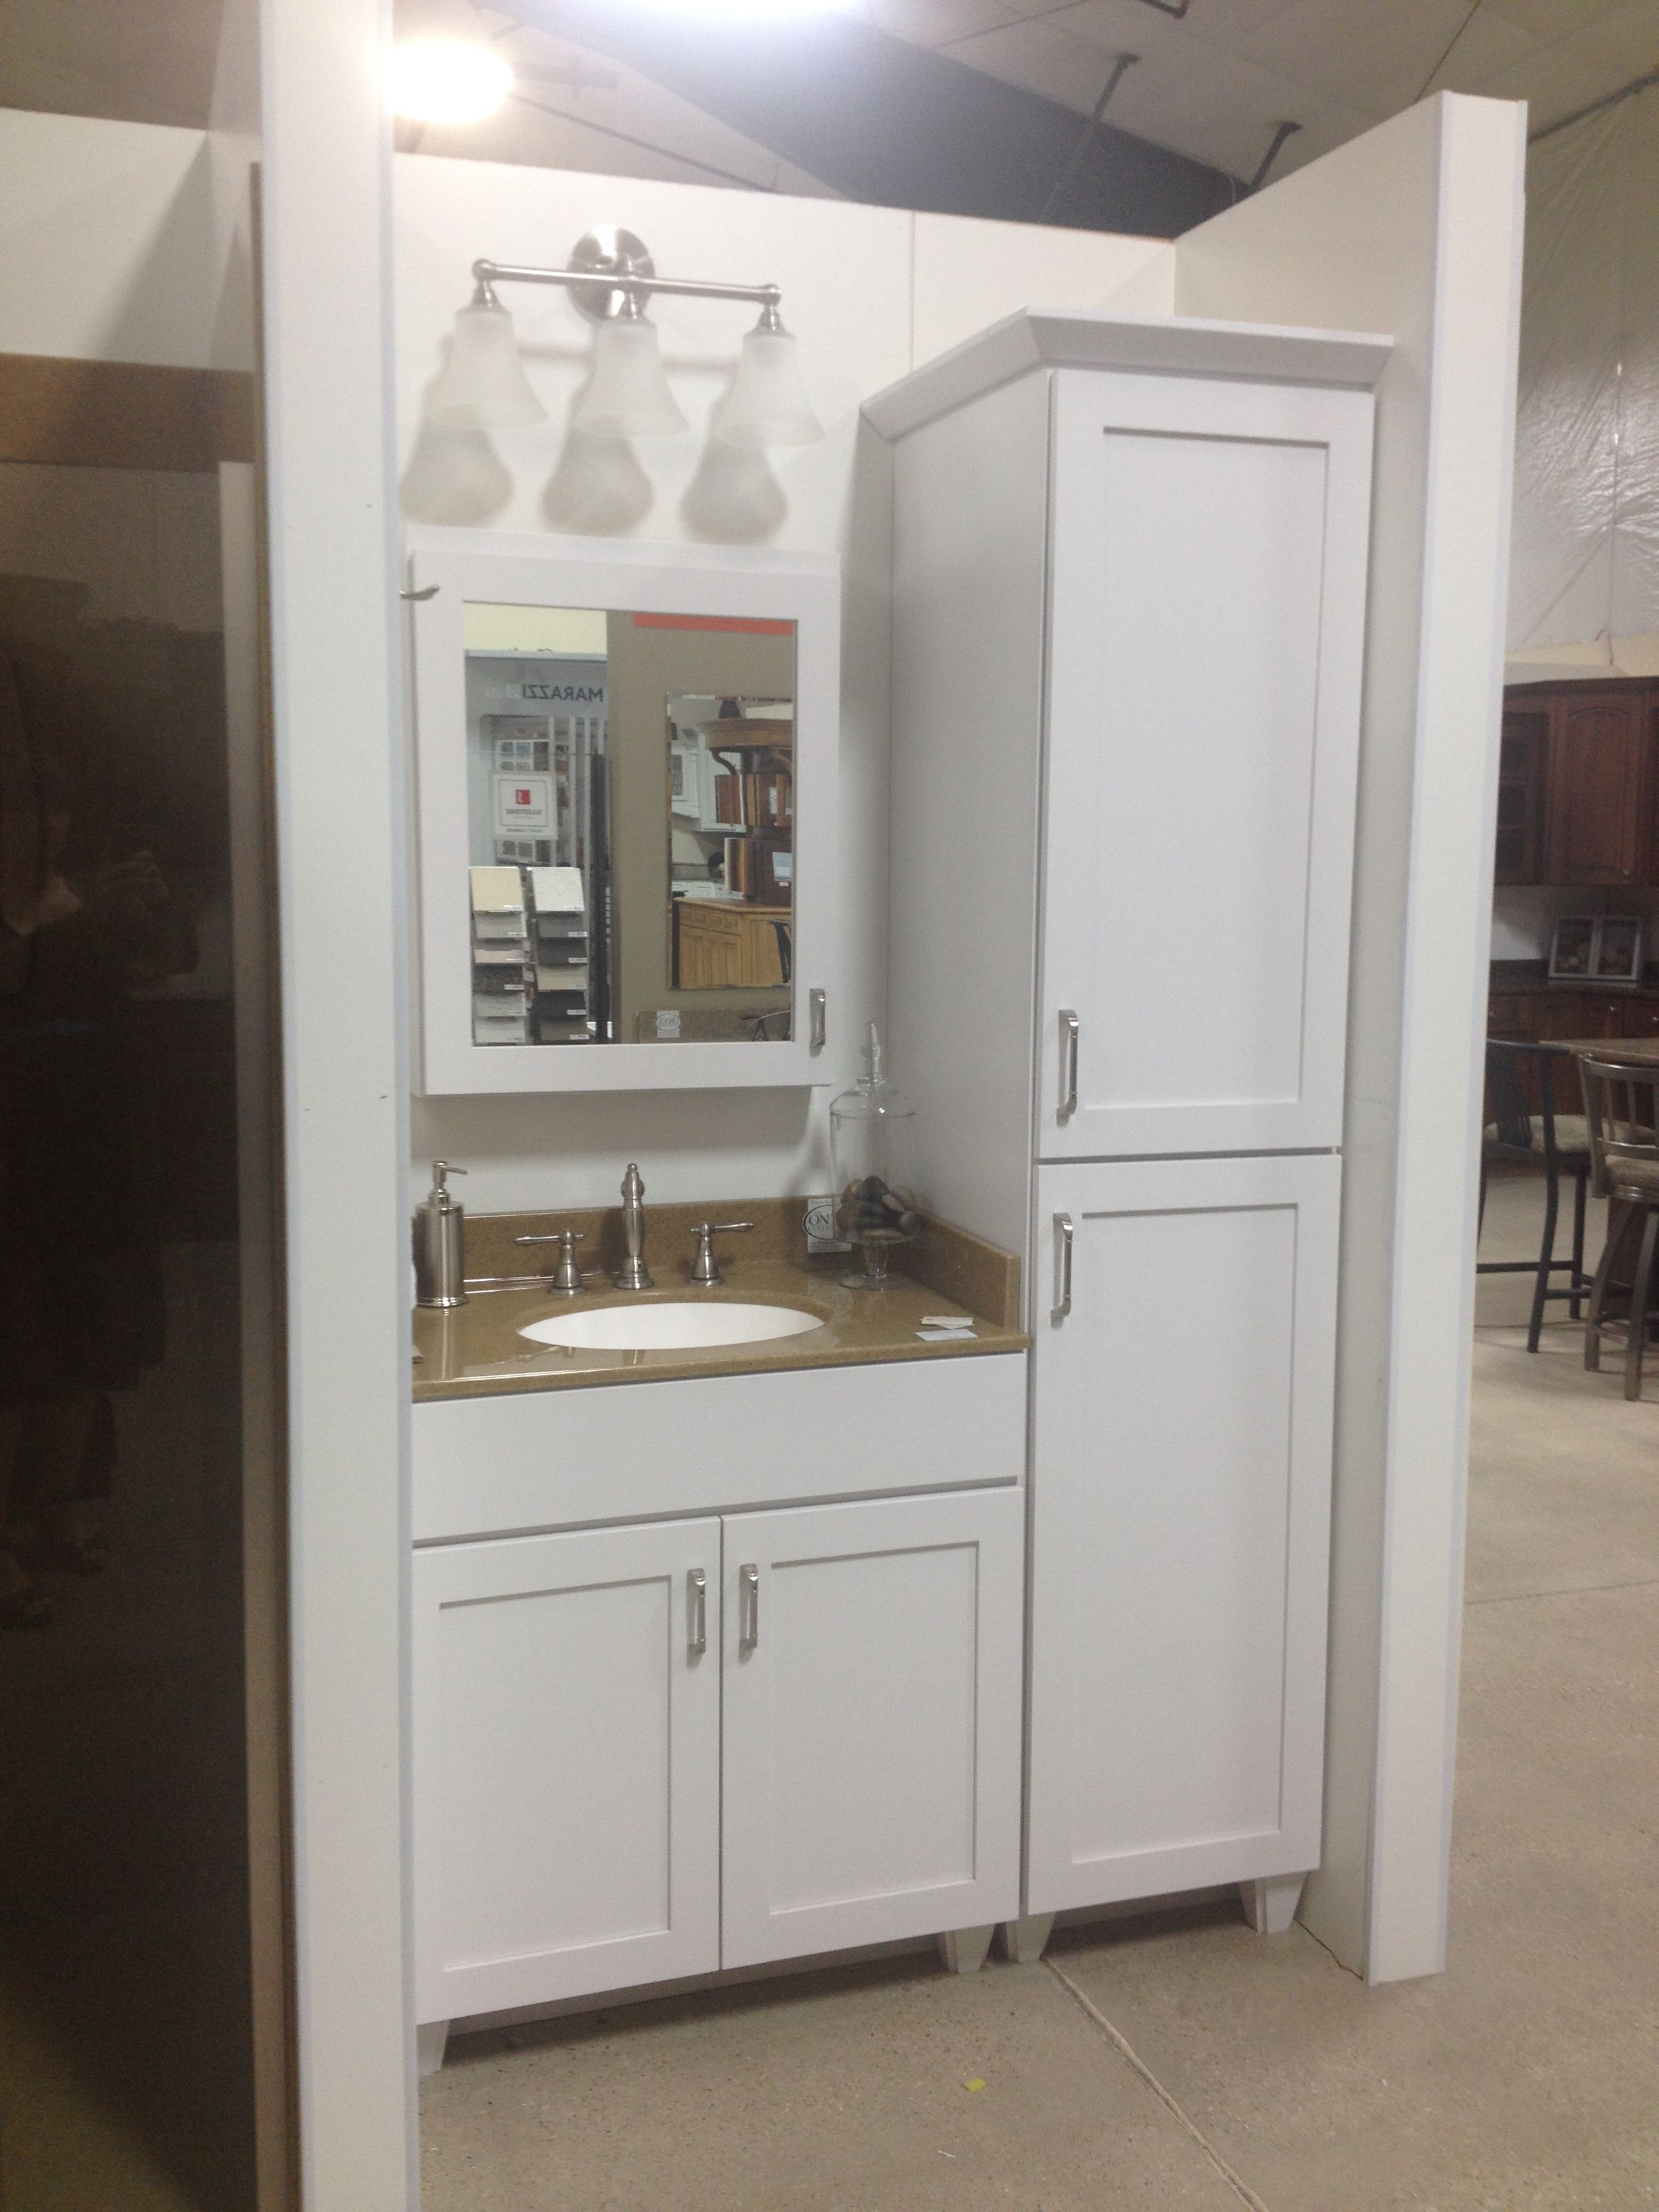 Delightful Affordable Kitchens, Baths And Appliances Bath Display.